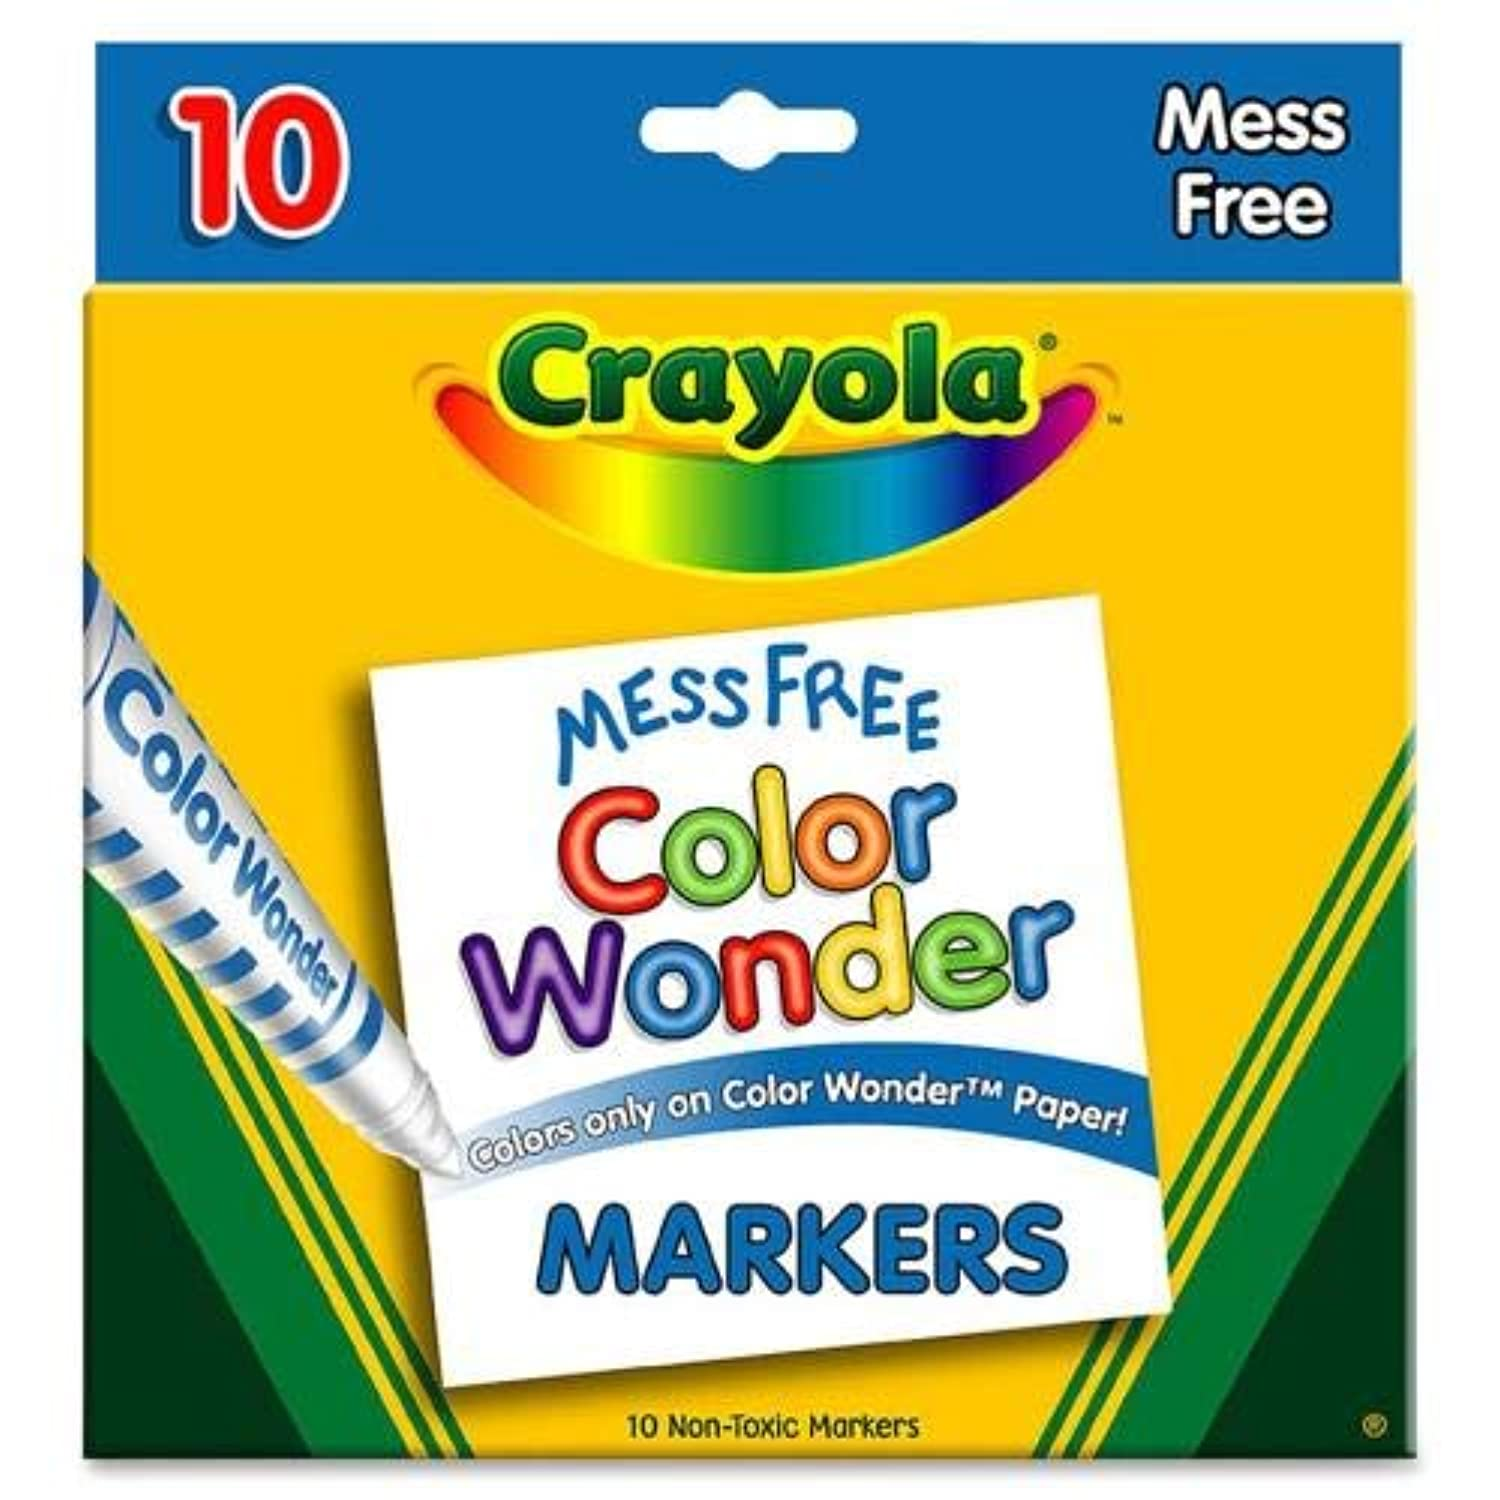 Color Wonder Mess Free Coloring Markers 10-Pack jbepbc2816059